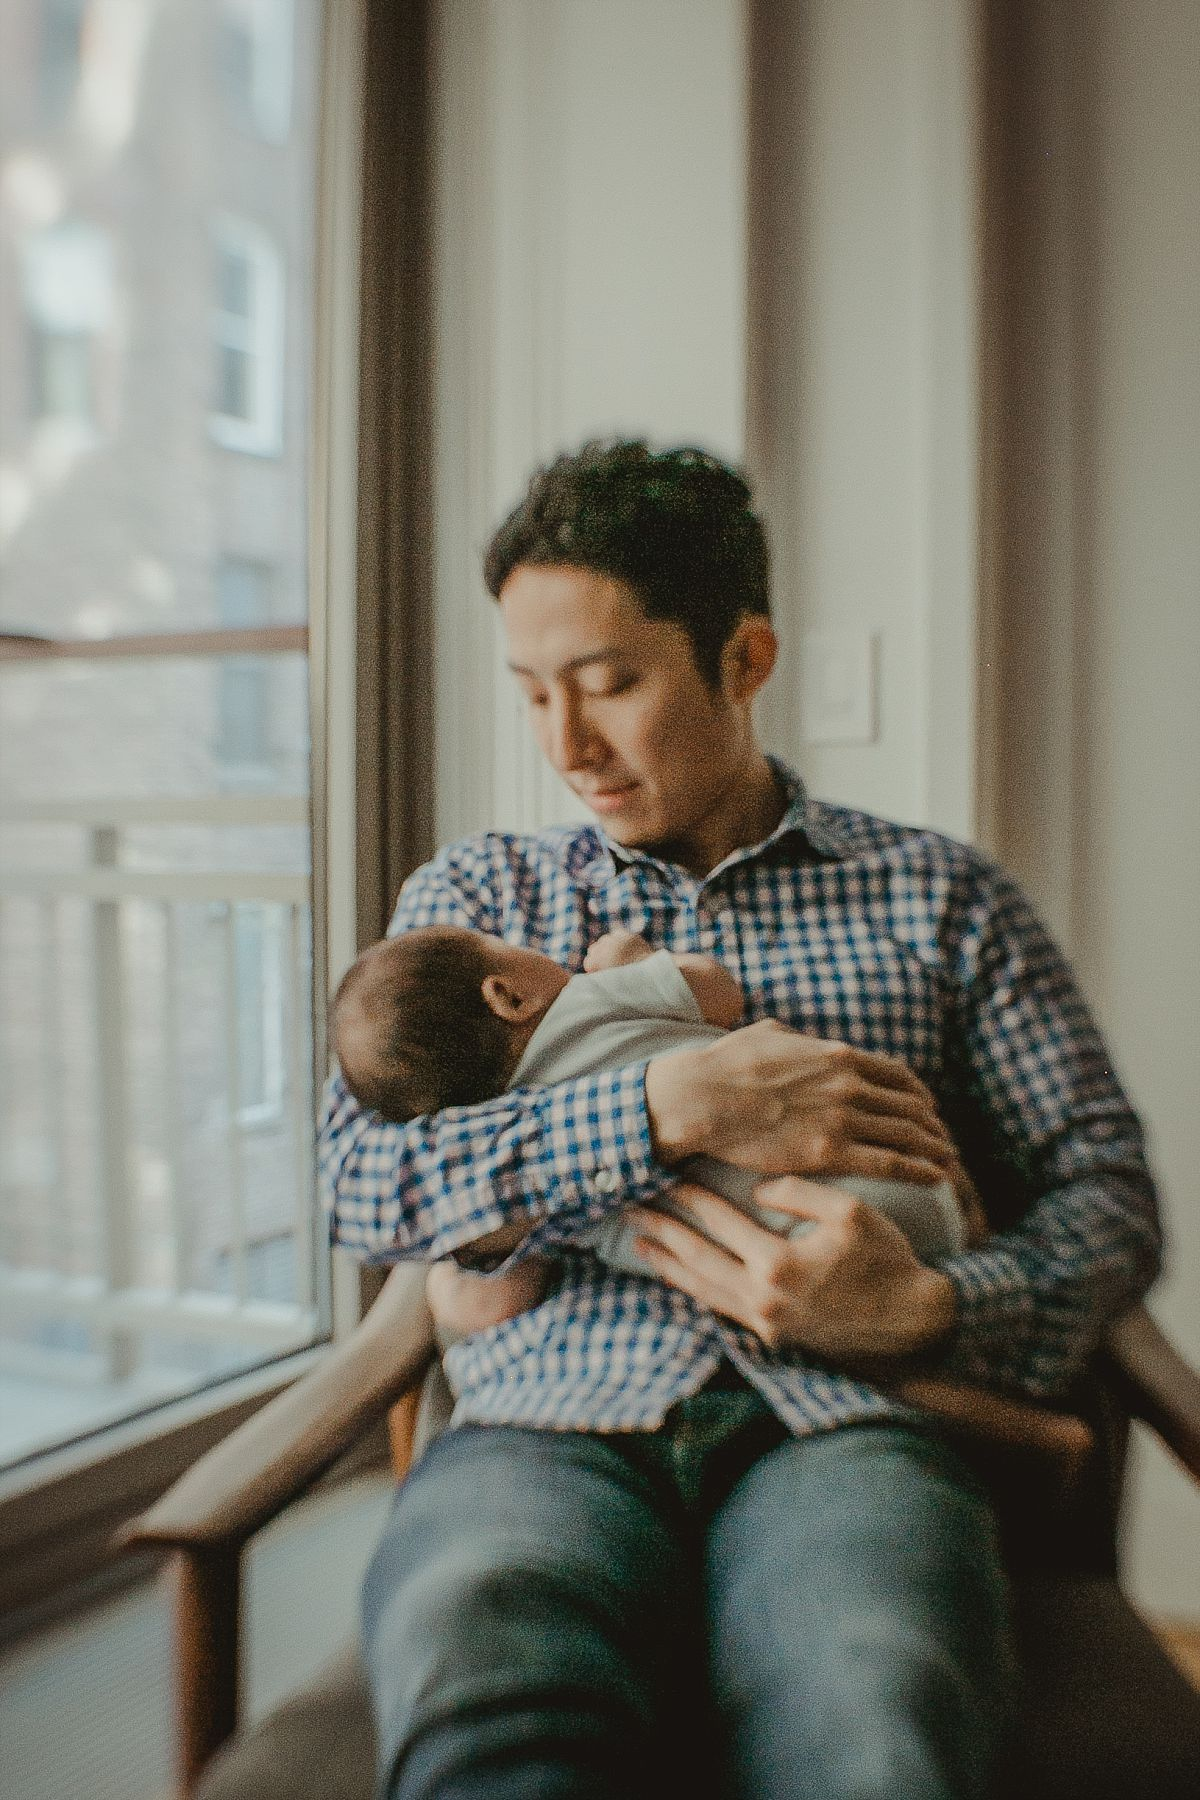 portrait of dad watching son sleep as he holds son in his arms. photo by nyc newborn photographer krystil mcdowall